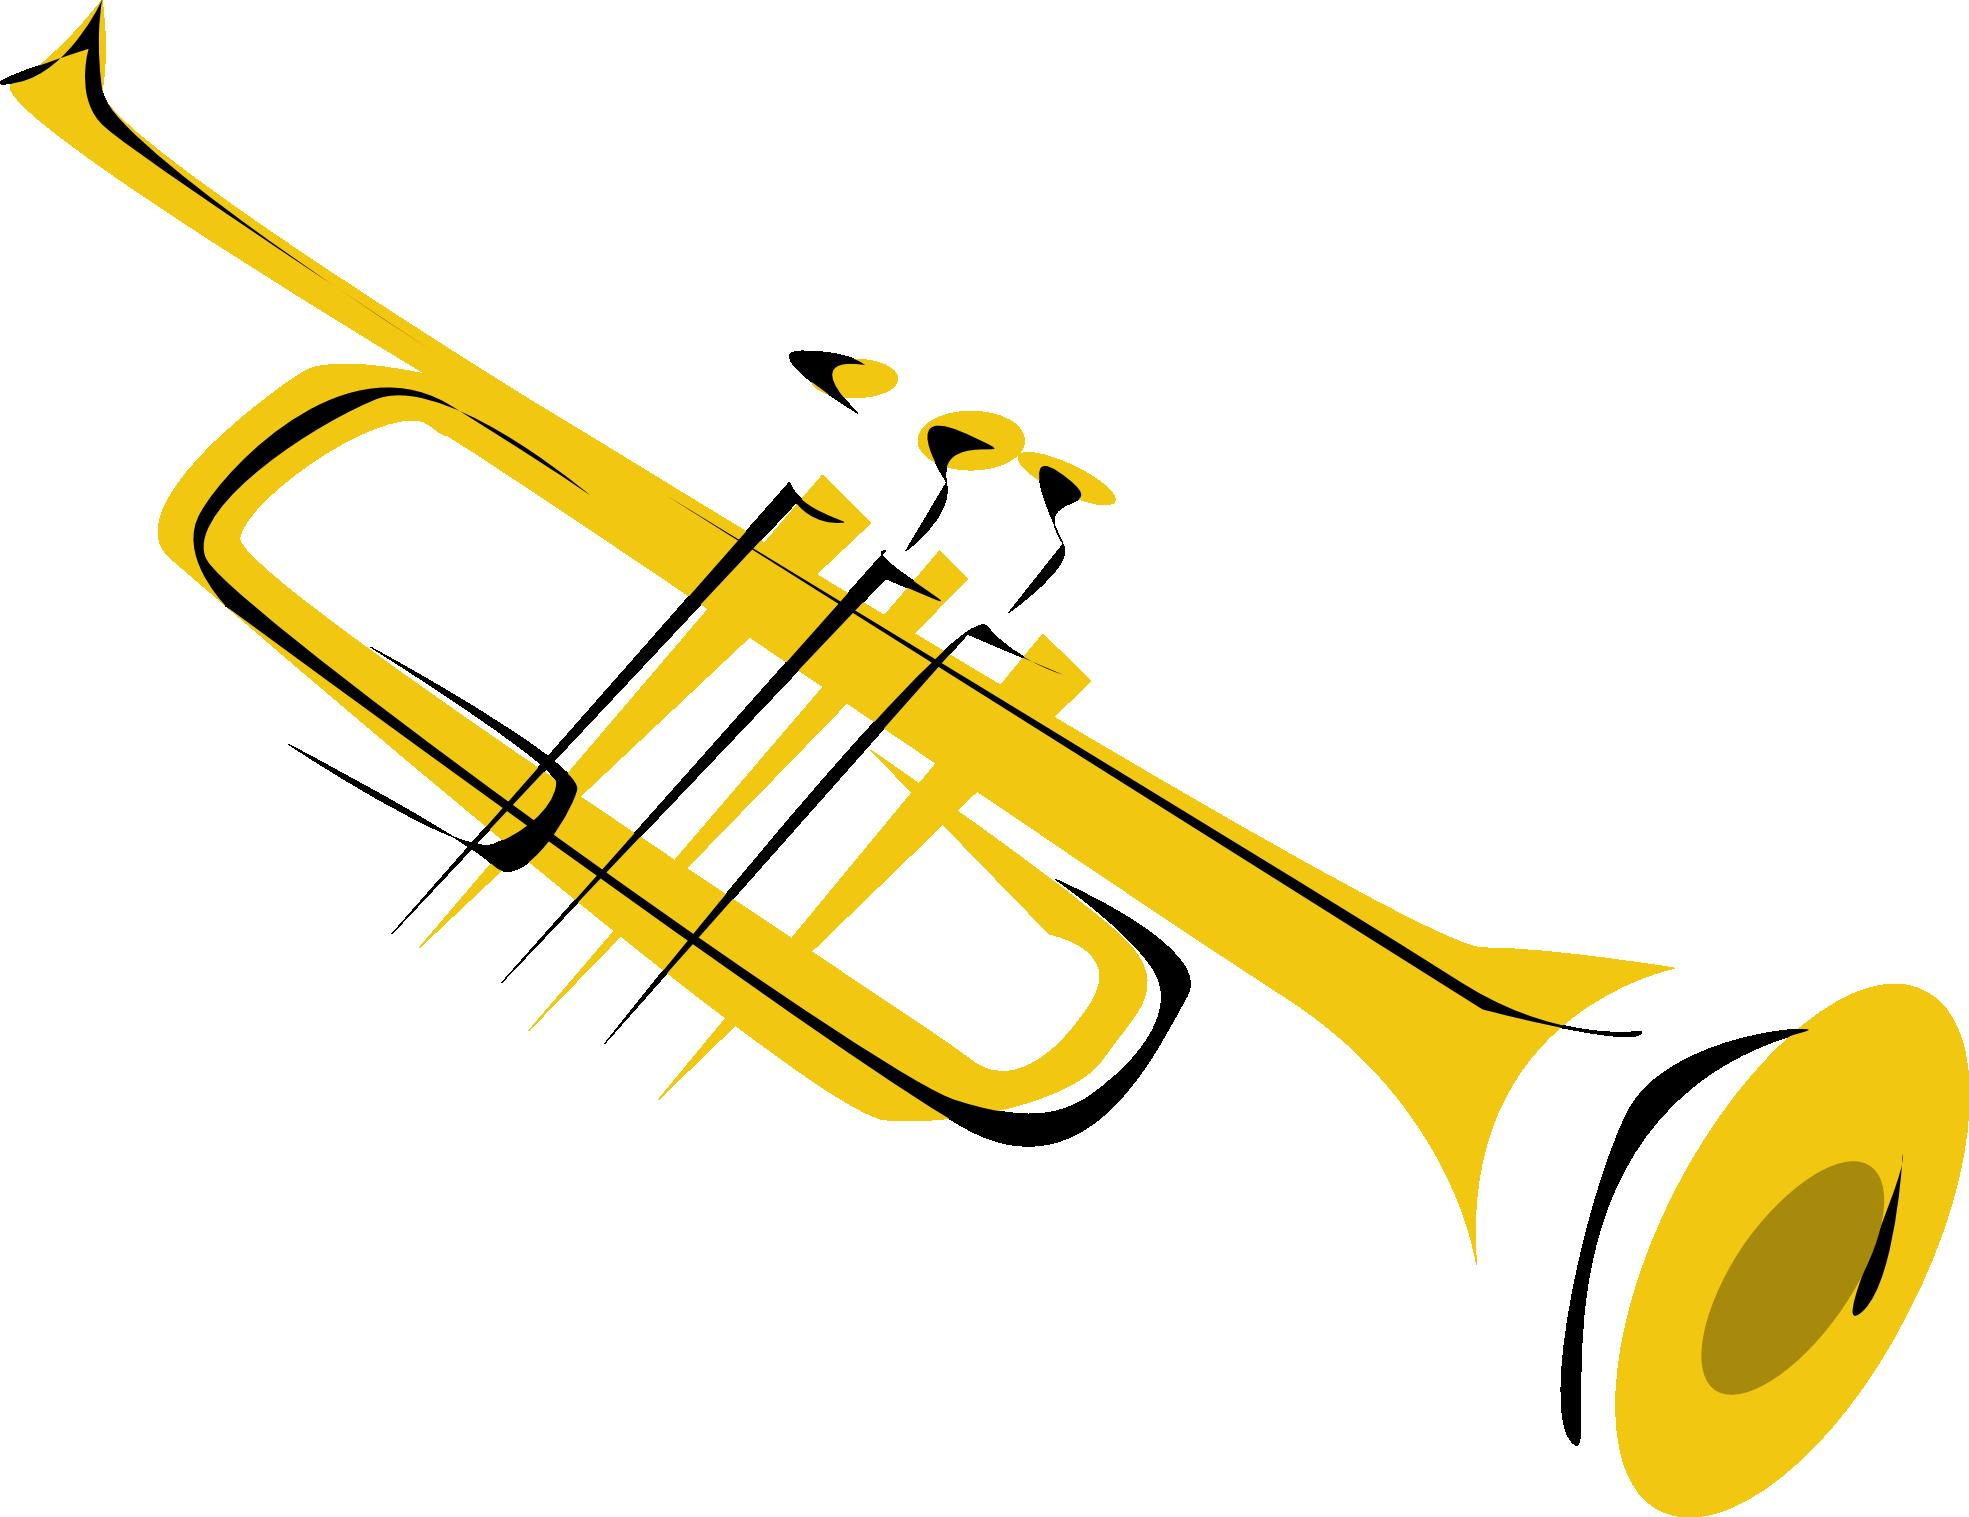 Notes on trumpet